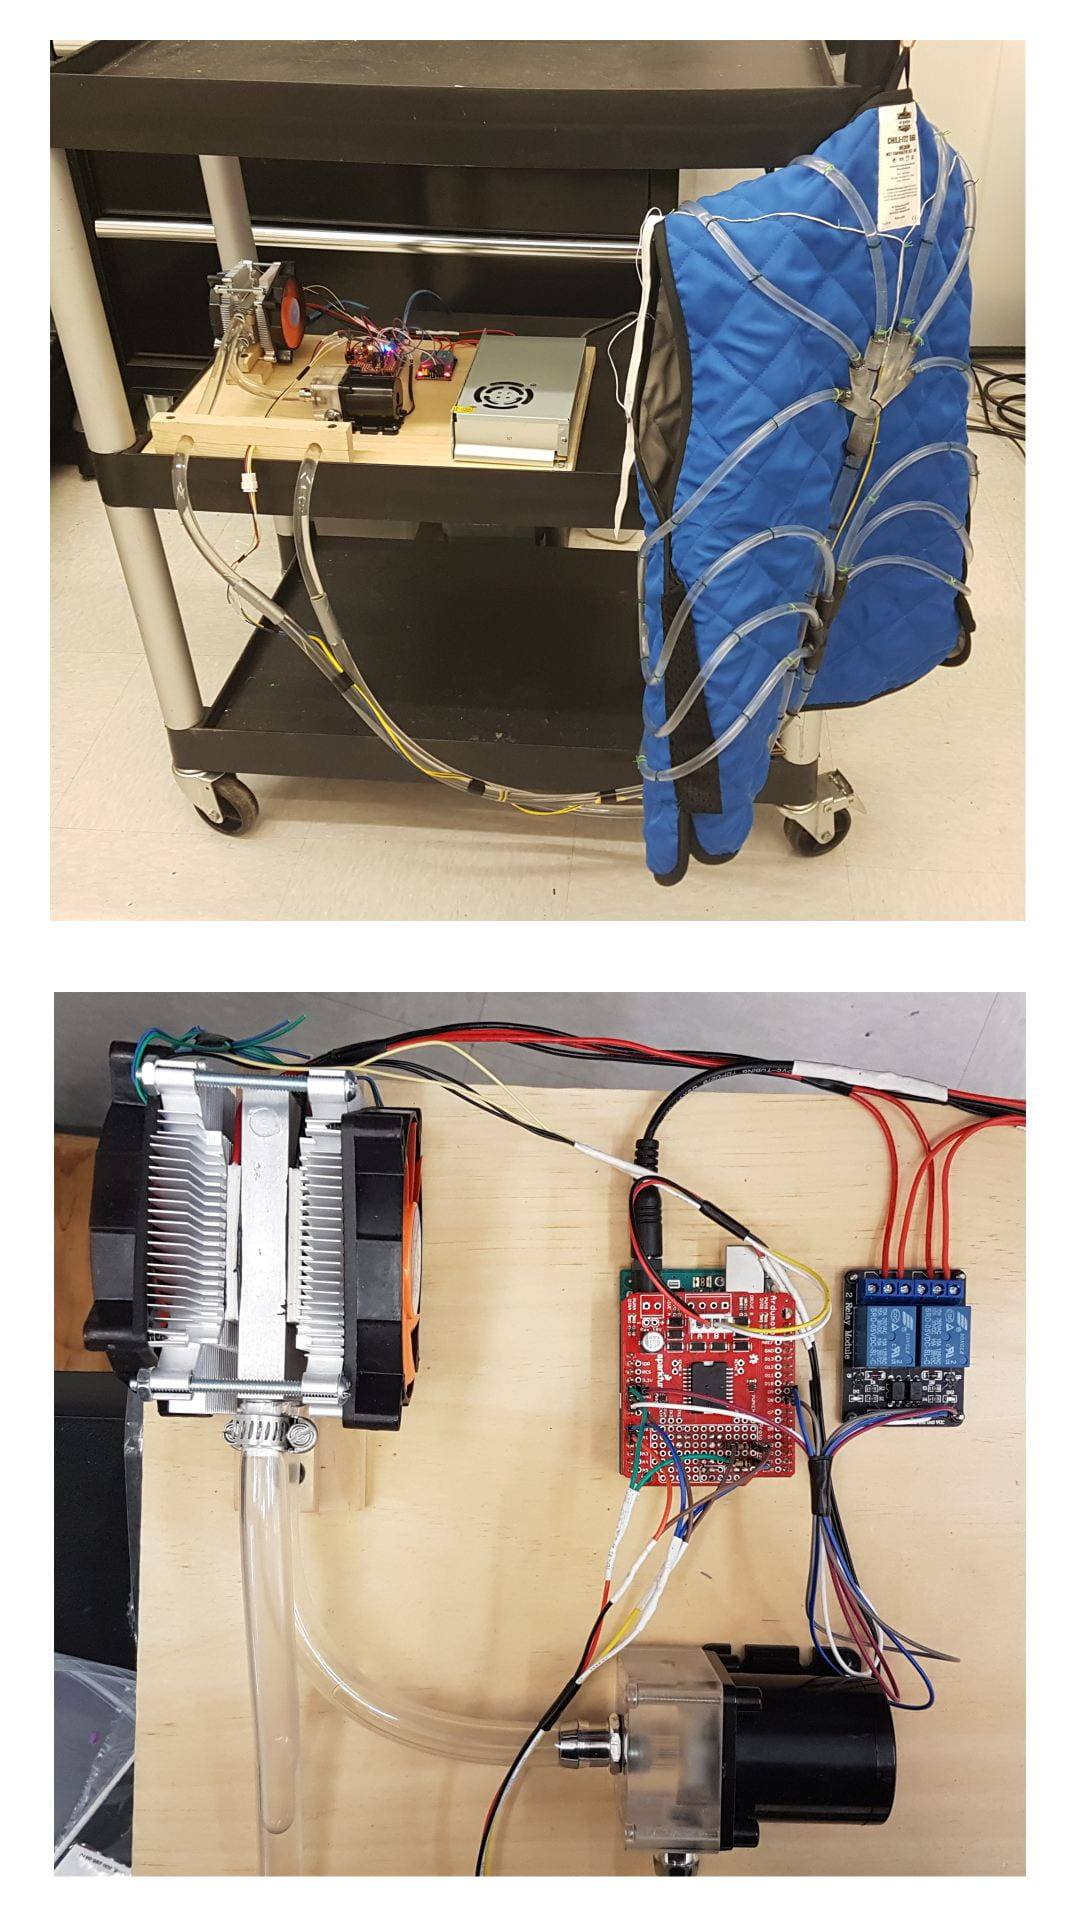 (Top) The completed prototype with the vest turned inside out; (bottom) close-up of the cooling and control board showing (clockwise, starting from upper left) Peltier cooler, Arduino controller, relays and pump